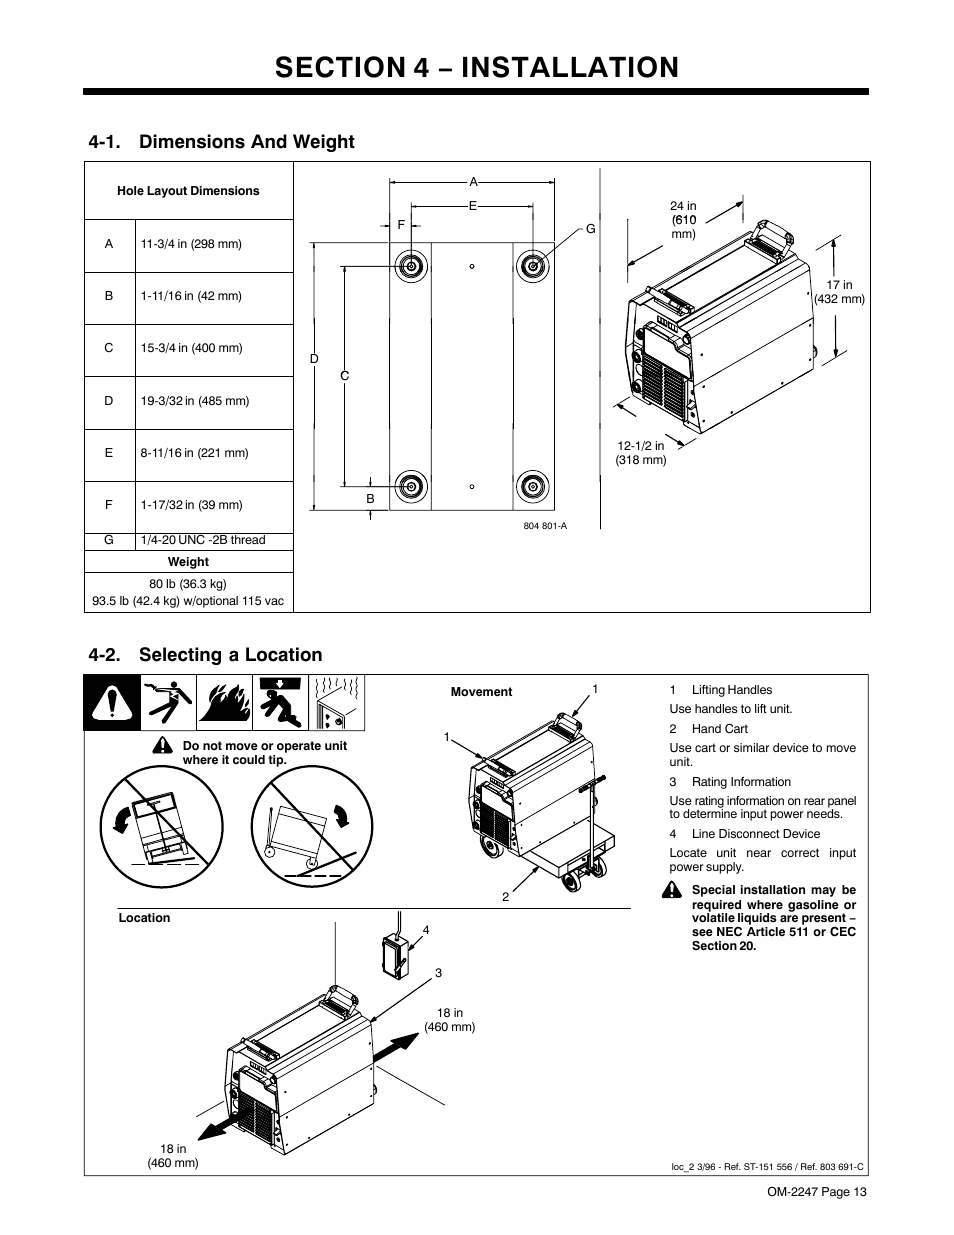 Section 4 − installation, 1. dimensions and weight, 2